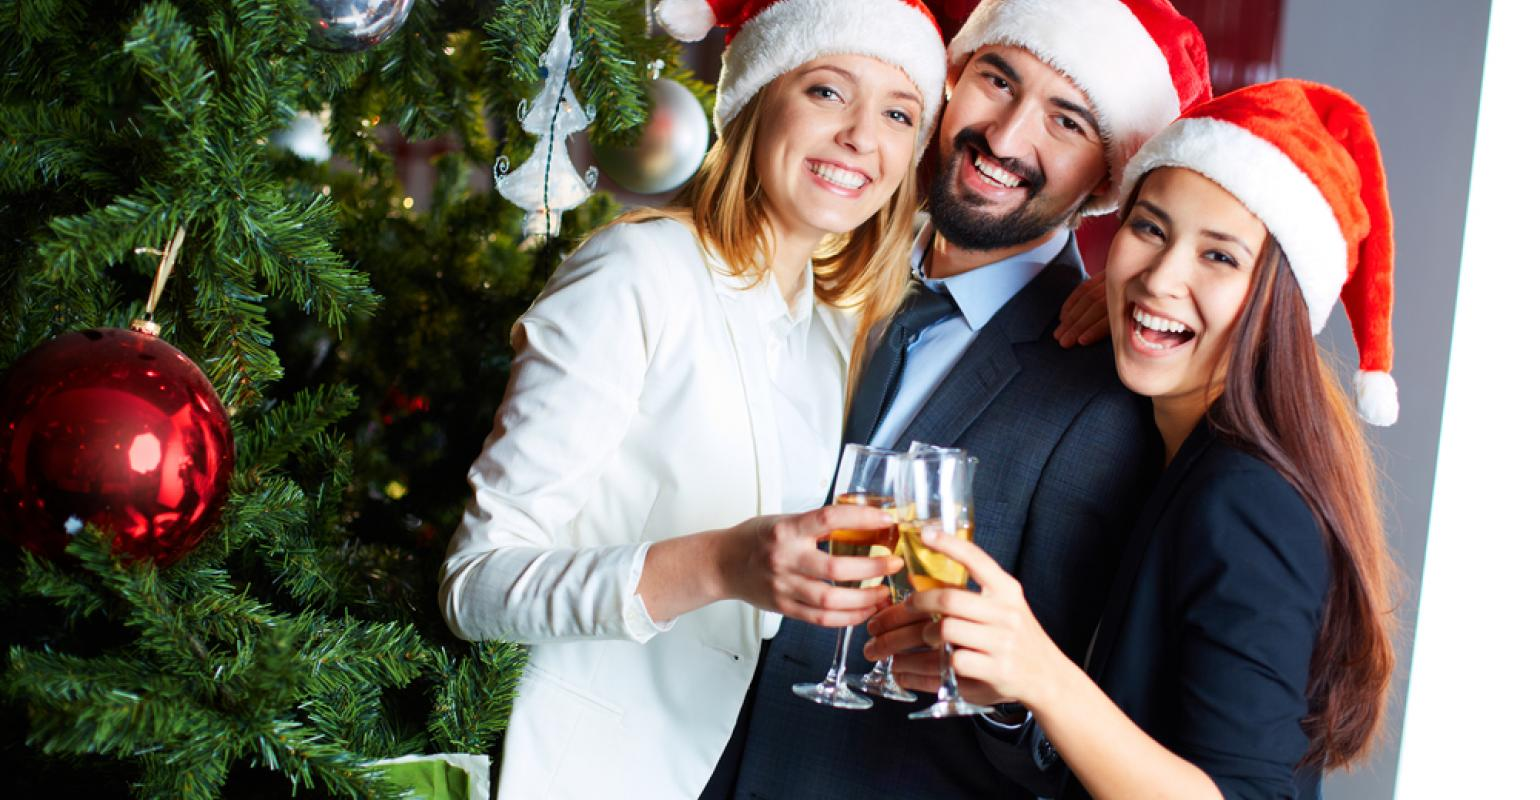 Staff Christmas Party Ideas Brisbane Part - 37: Staff Christmas Party Ideas Brisbane Part - 28: What You Need To Know About  Tax